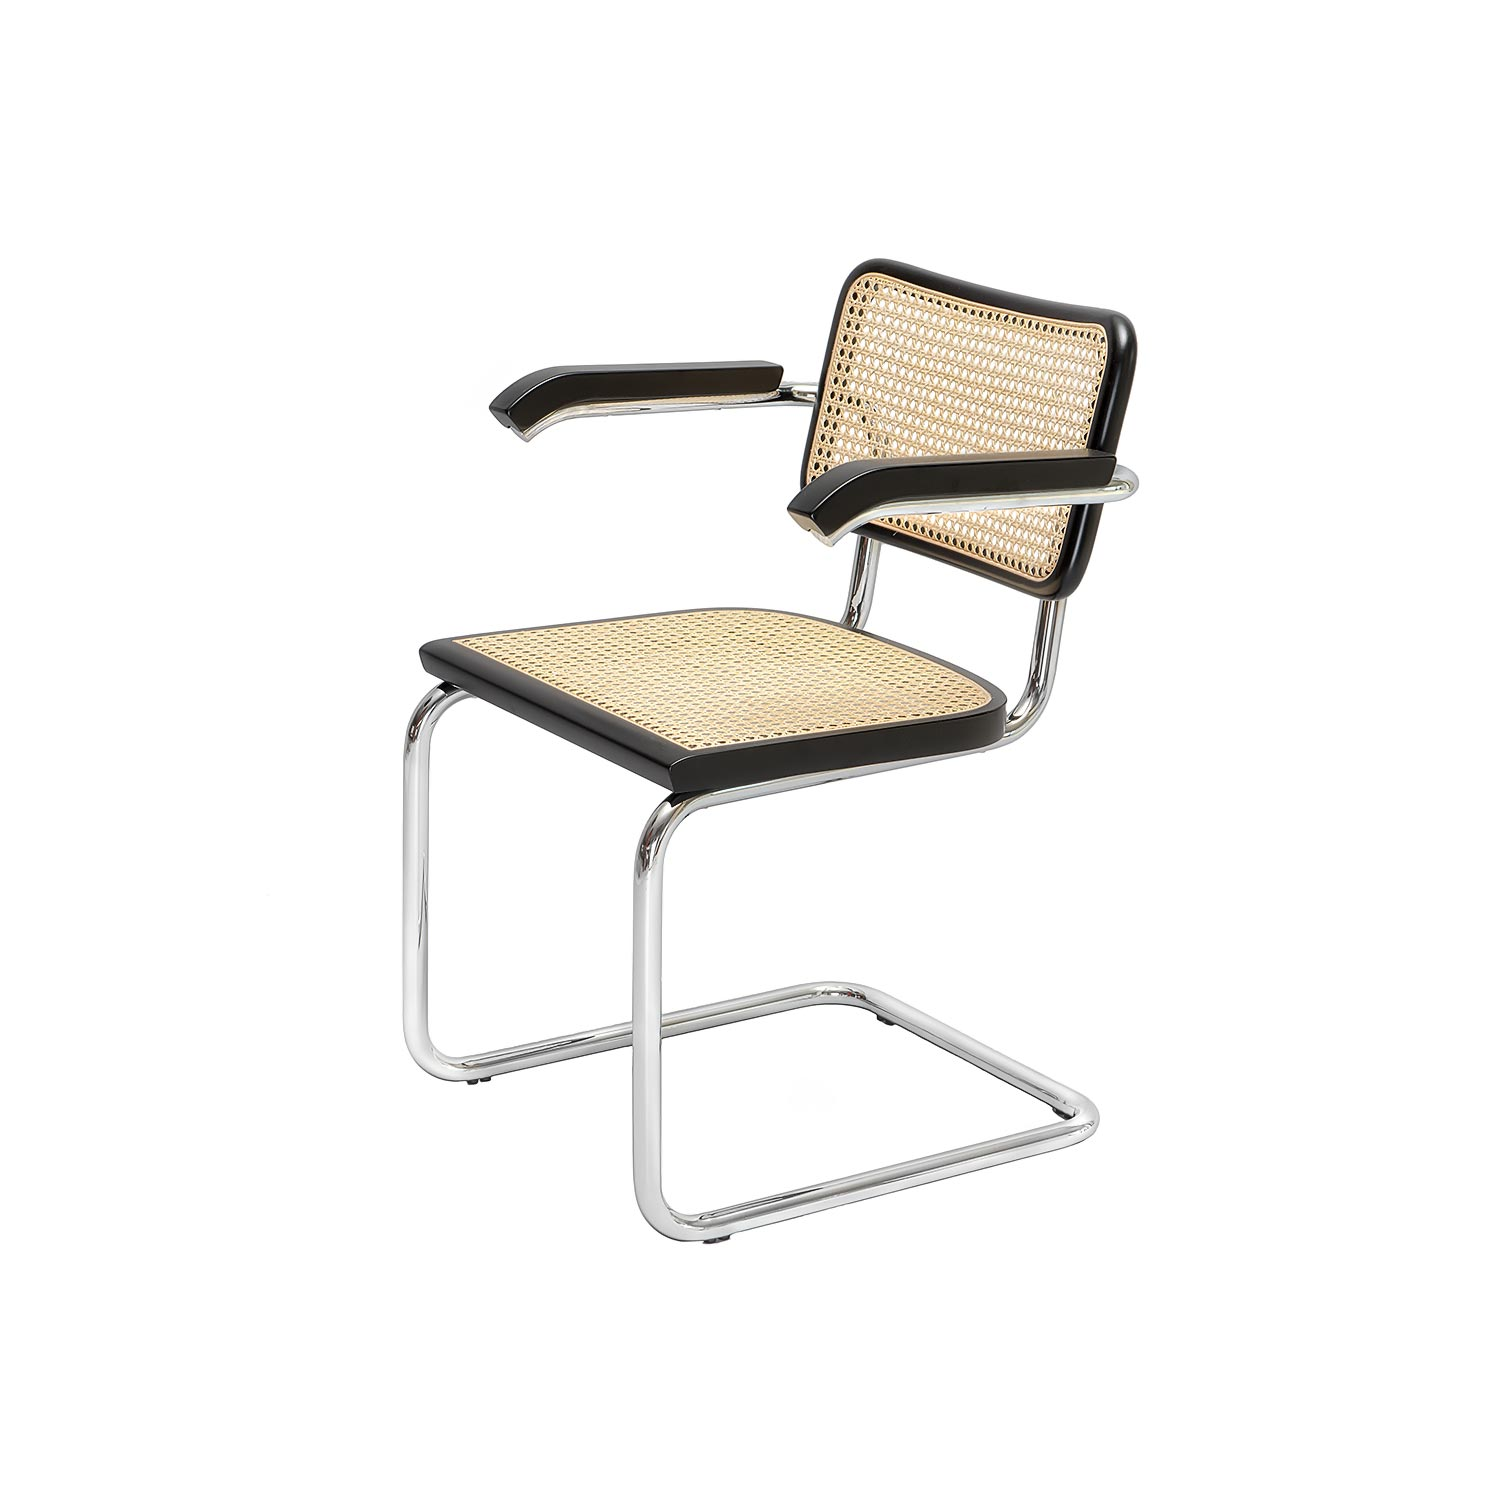 cesca chair b 64 designed by marcel breuer steelform. Black Bedroom Furniture Sets. Home Design Ideas